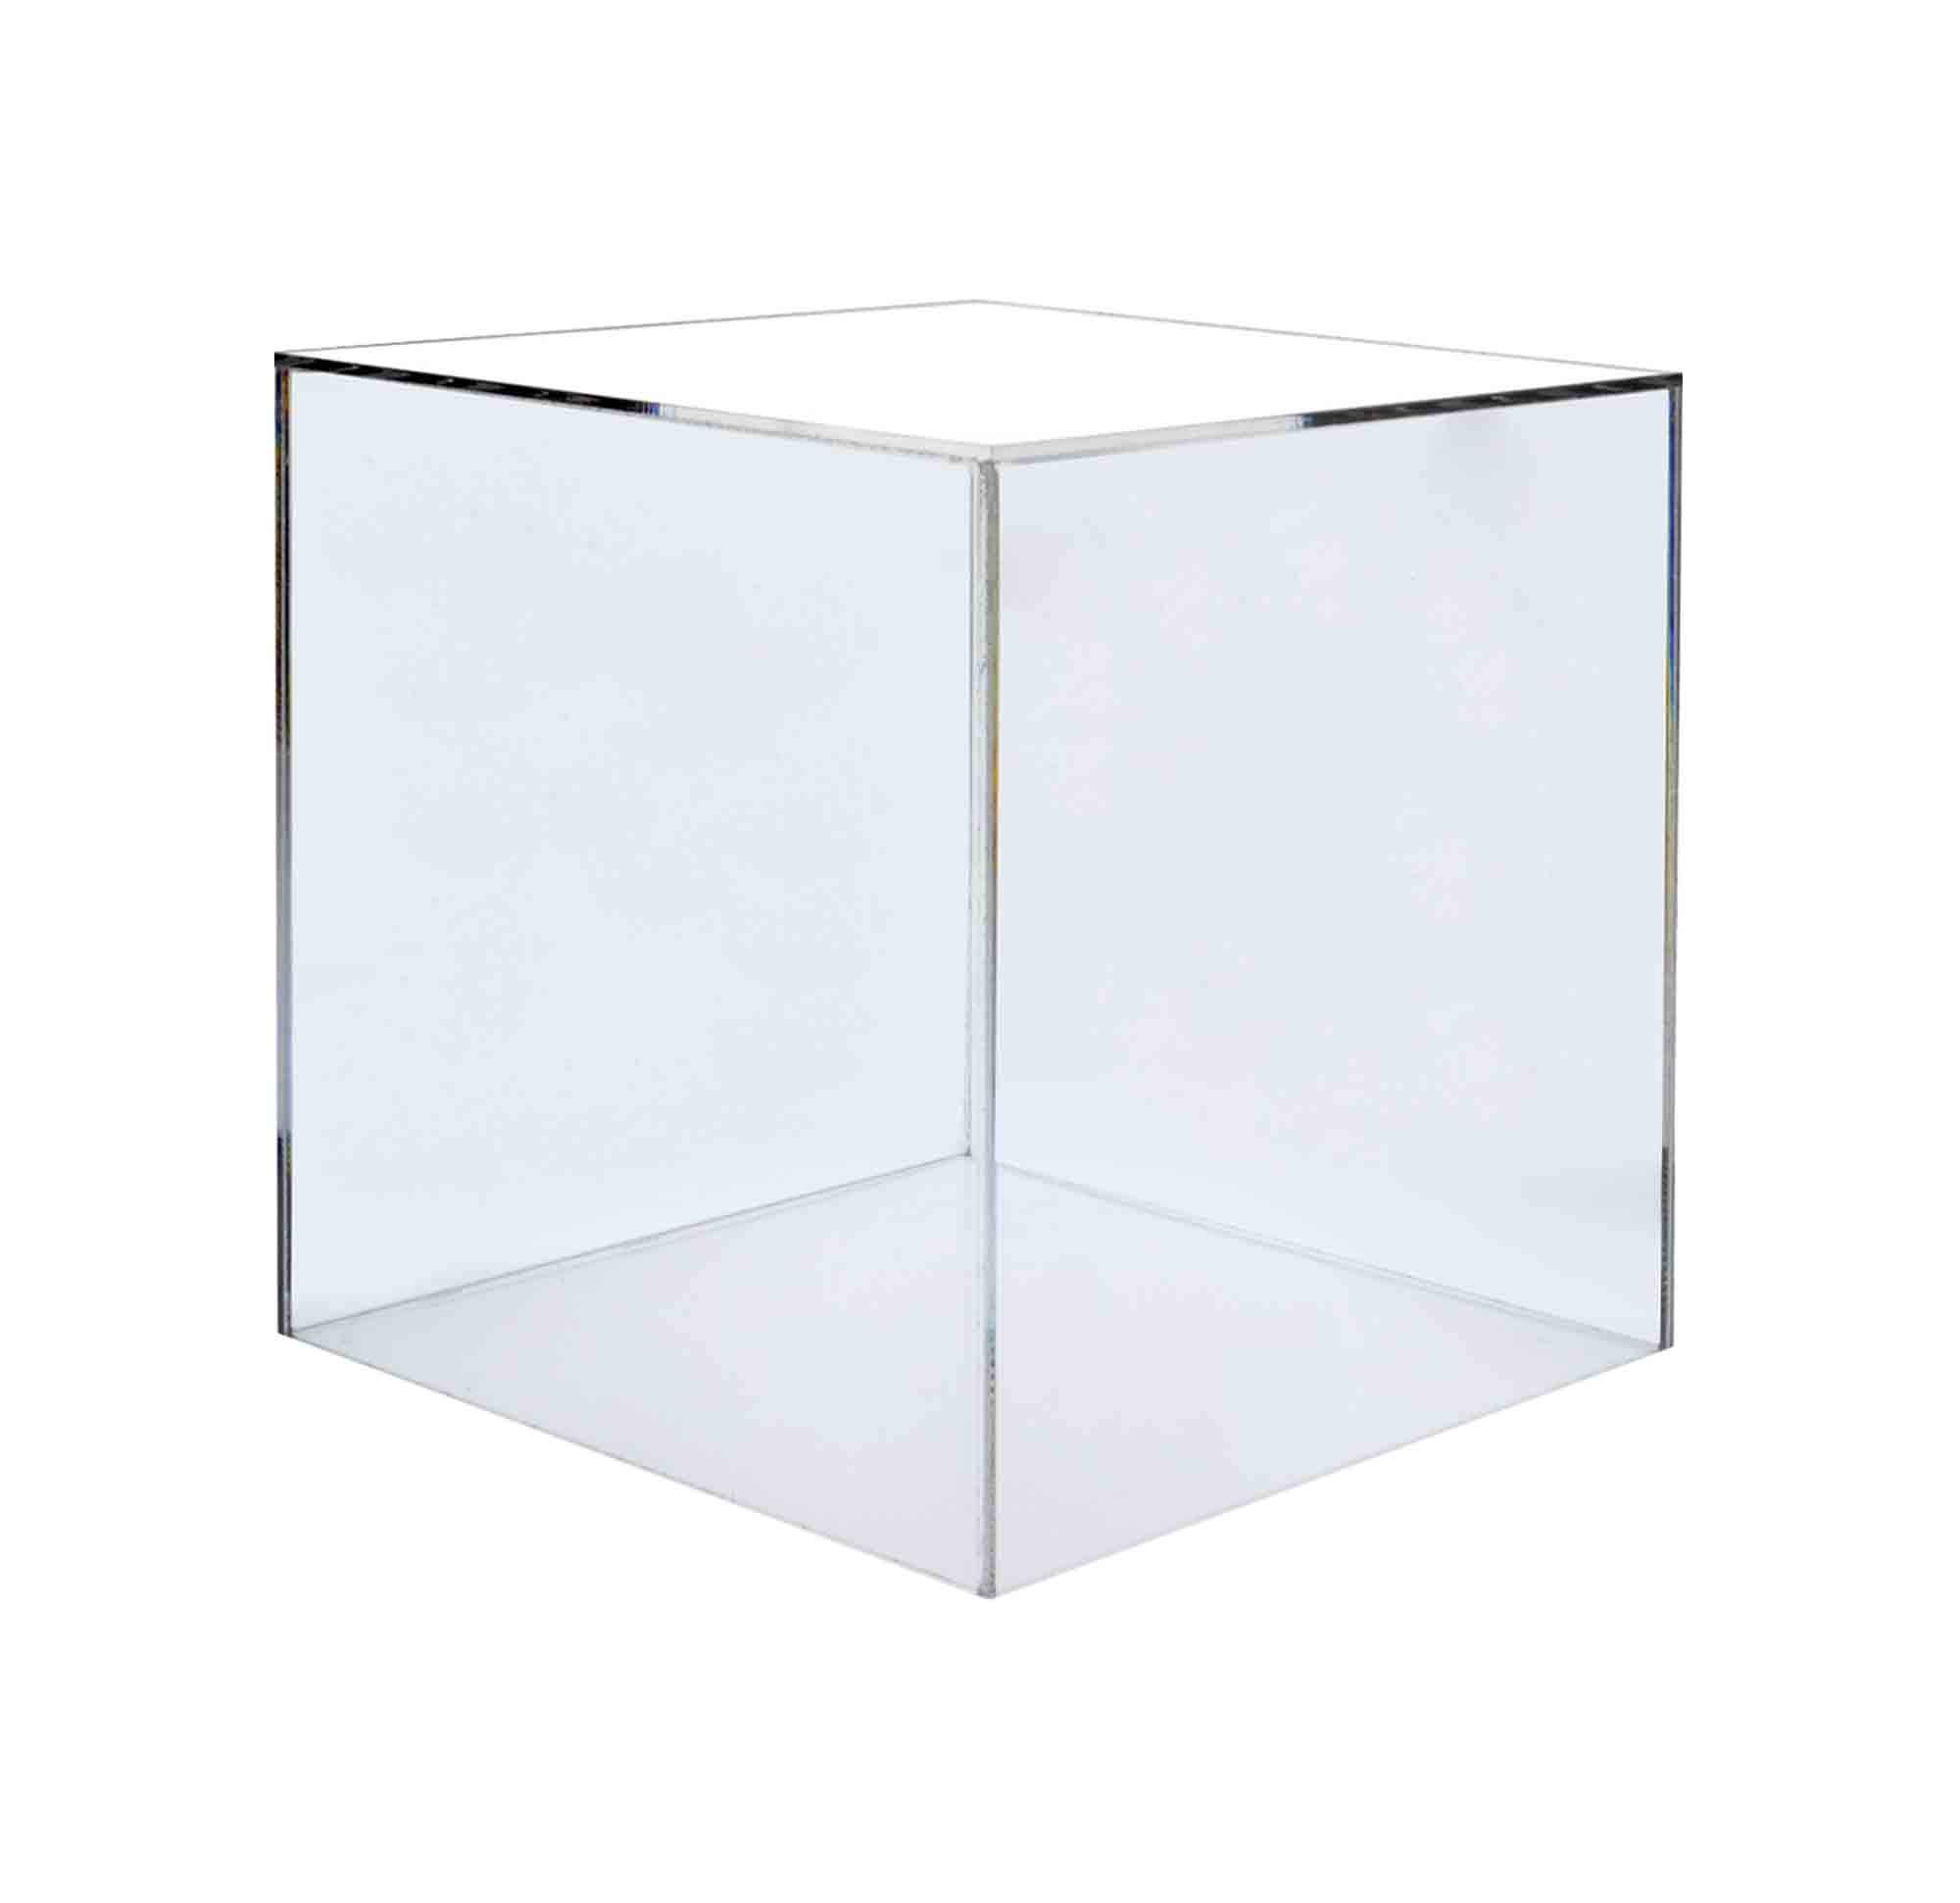 Marketing Holders 9''w x 9''d x 9''h Pedestal Stand Art Presentation Exhibit Example Trophy Sample Flower Arrangement Display Plant Stand Cube Retail Riser Collectible Cover 5 Sided Cube by Marketing Holders